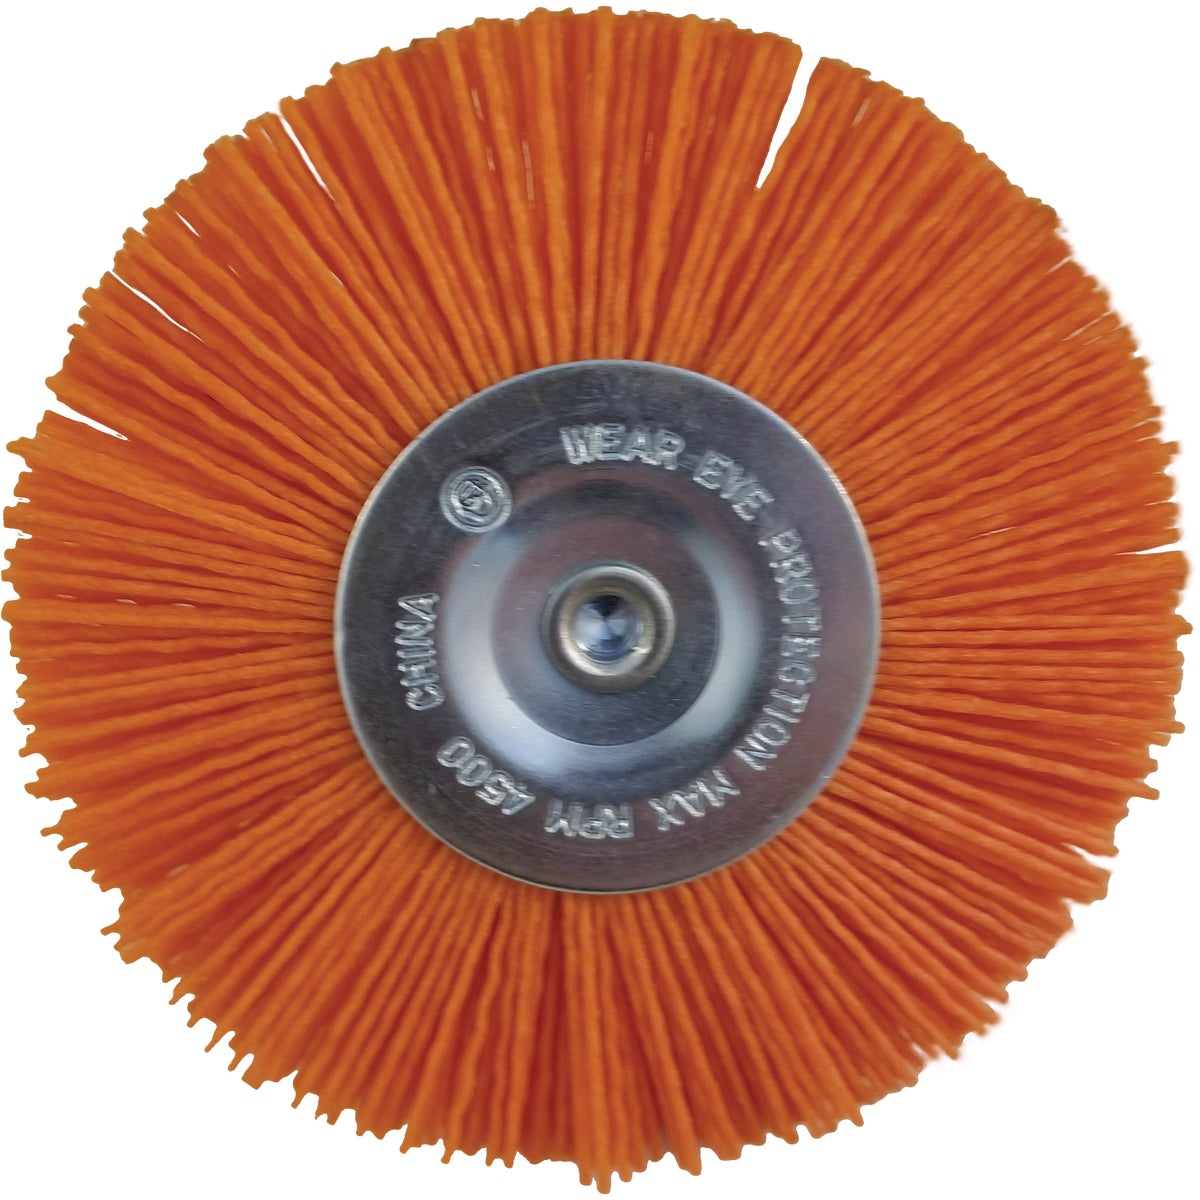 "4"" COARSE WHEEL BRUSH - 541778-4 by Dico Products Corp"